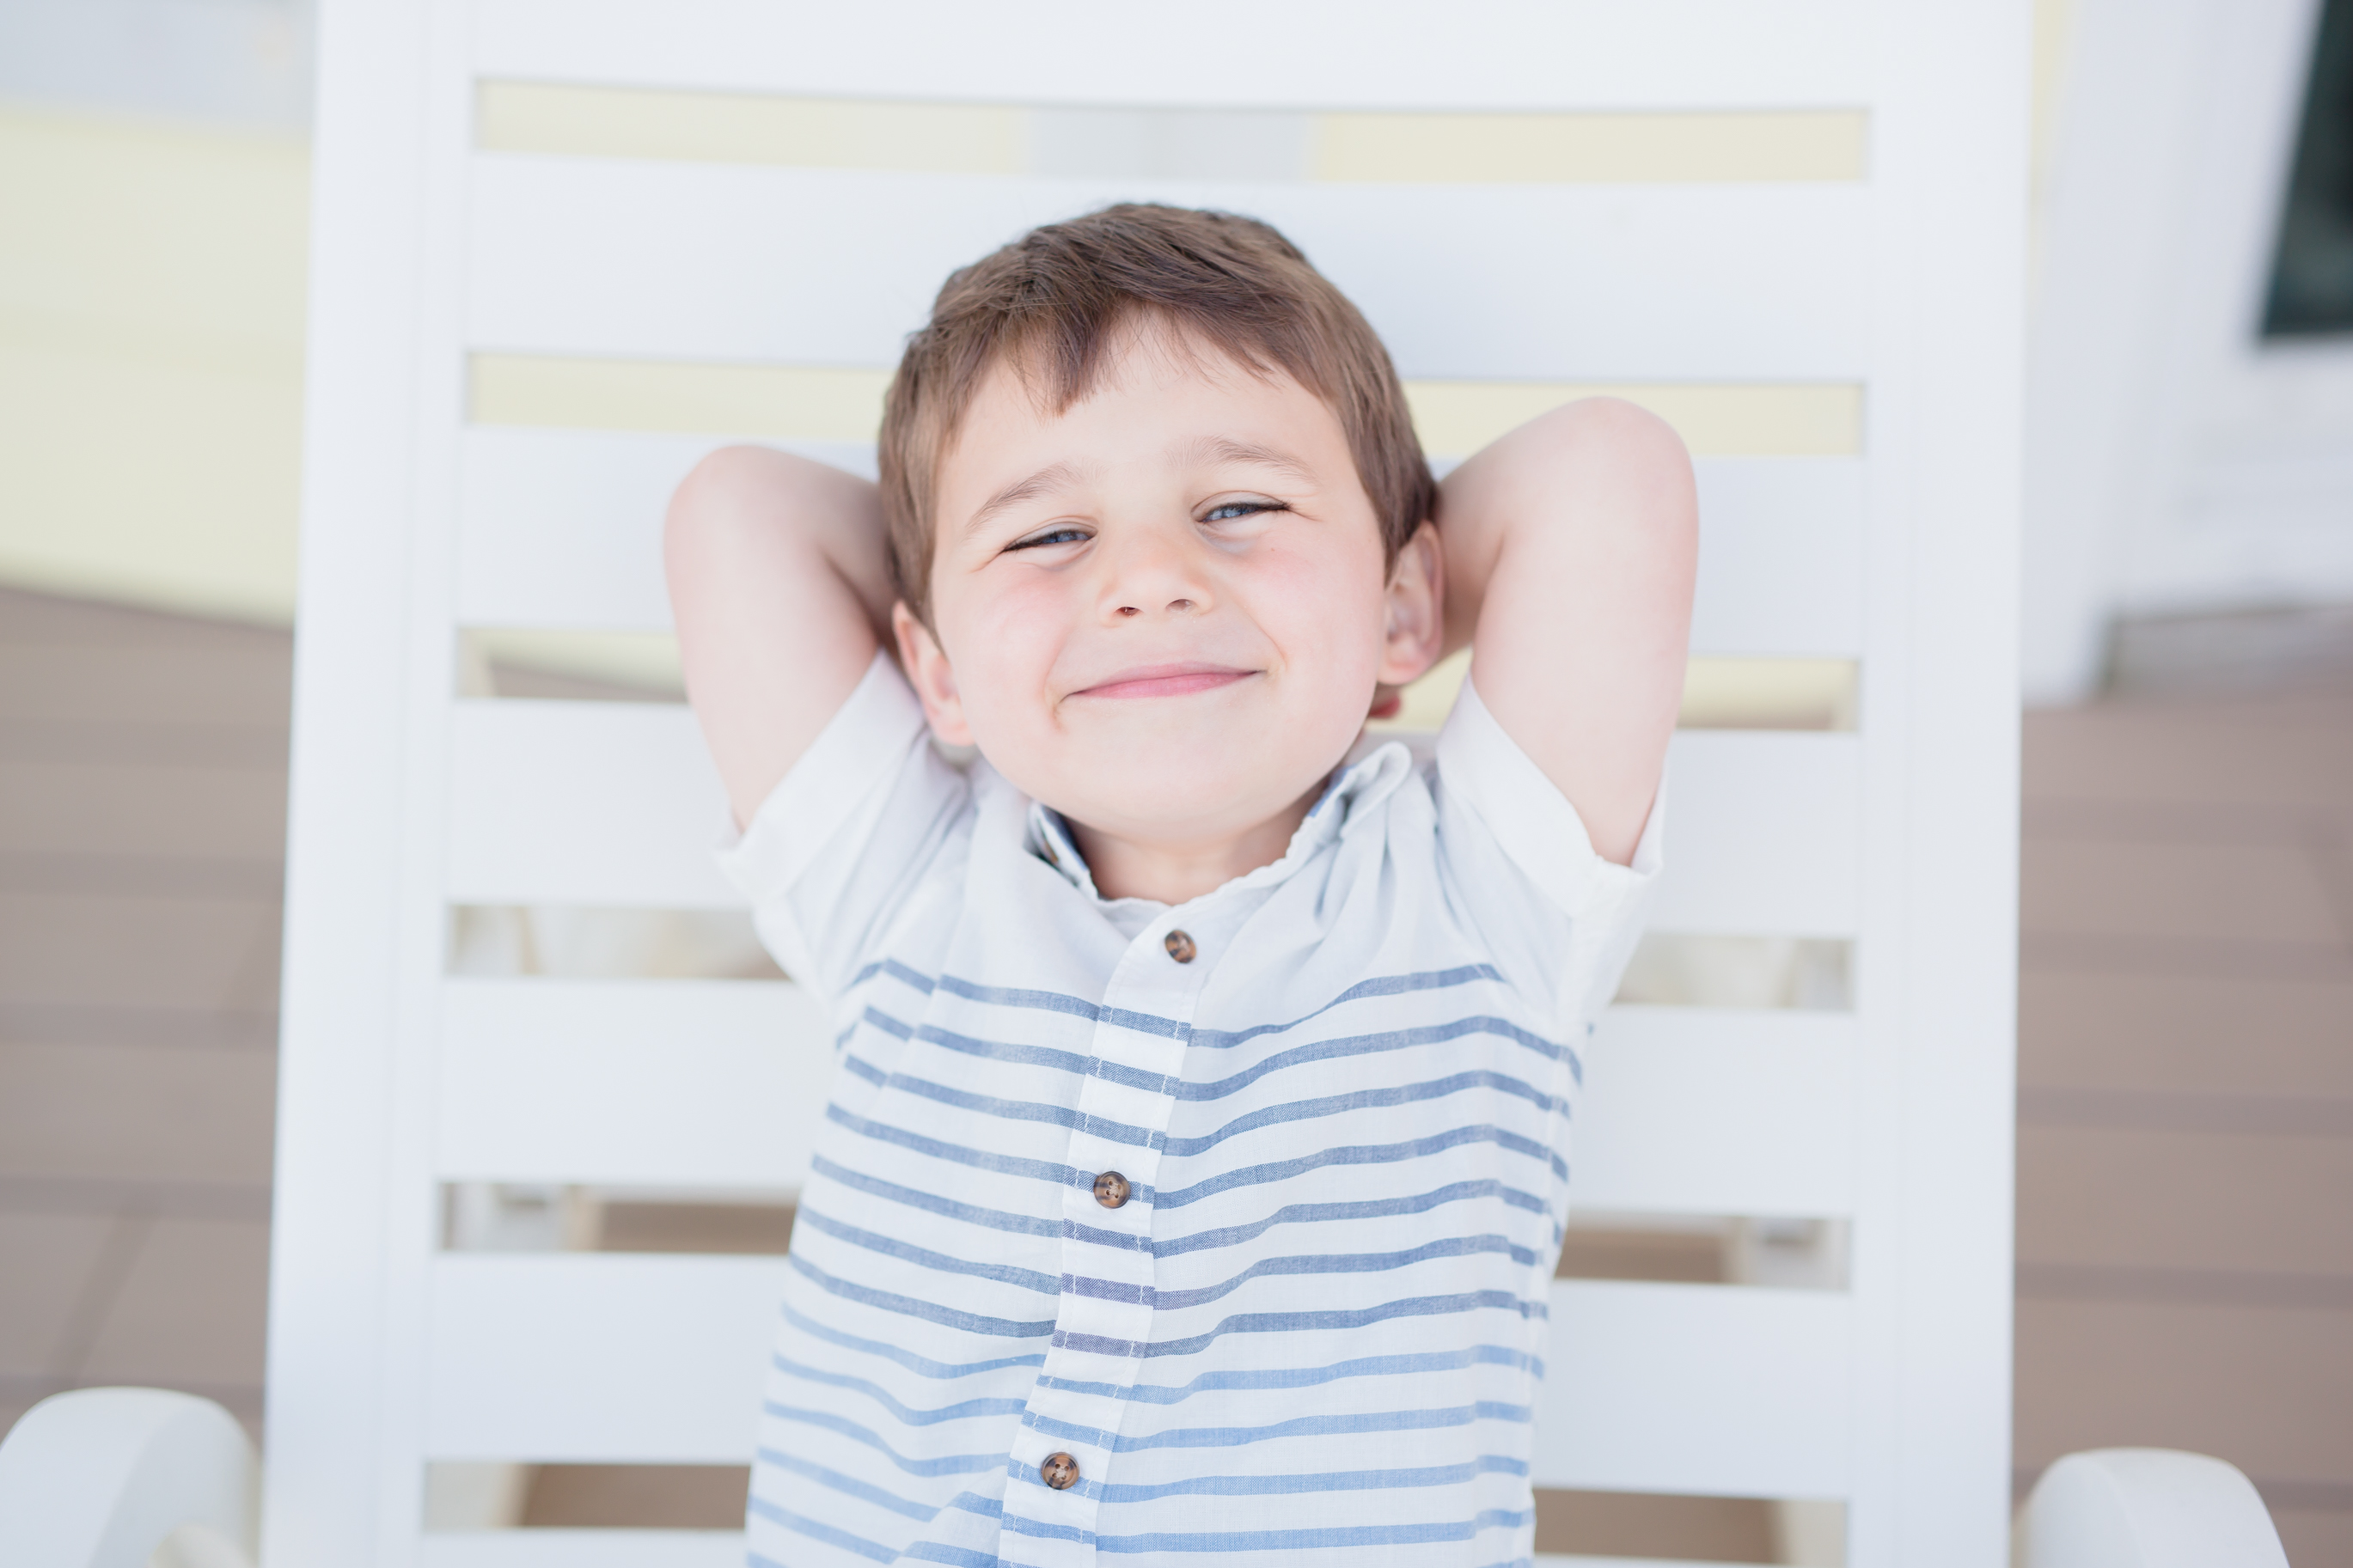 sami roy photography, why you should hire a professional to take your childs photos